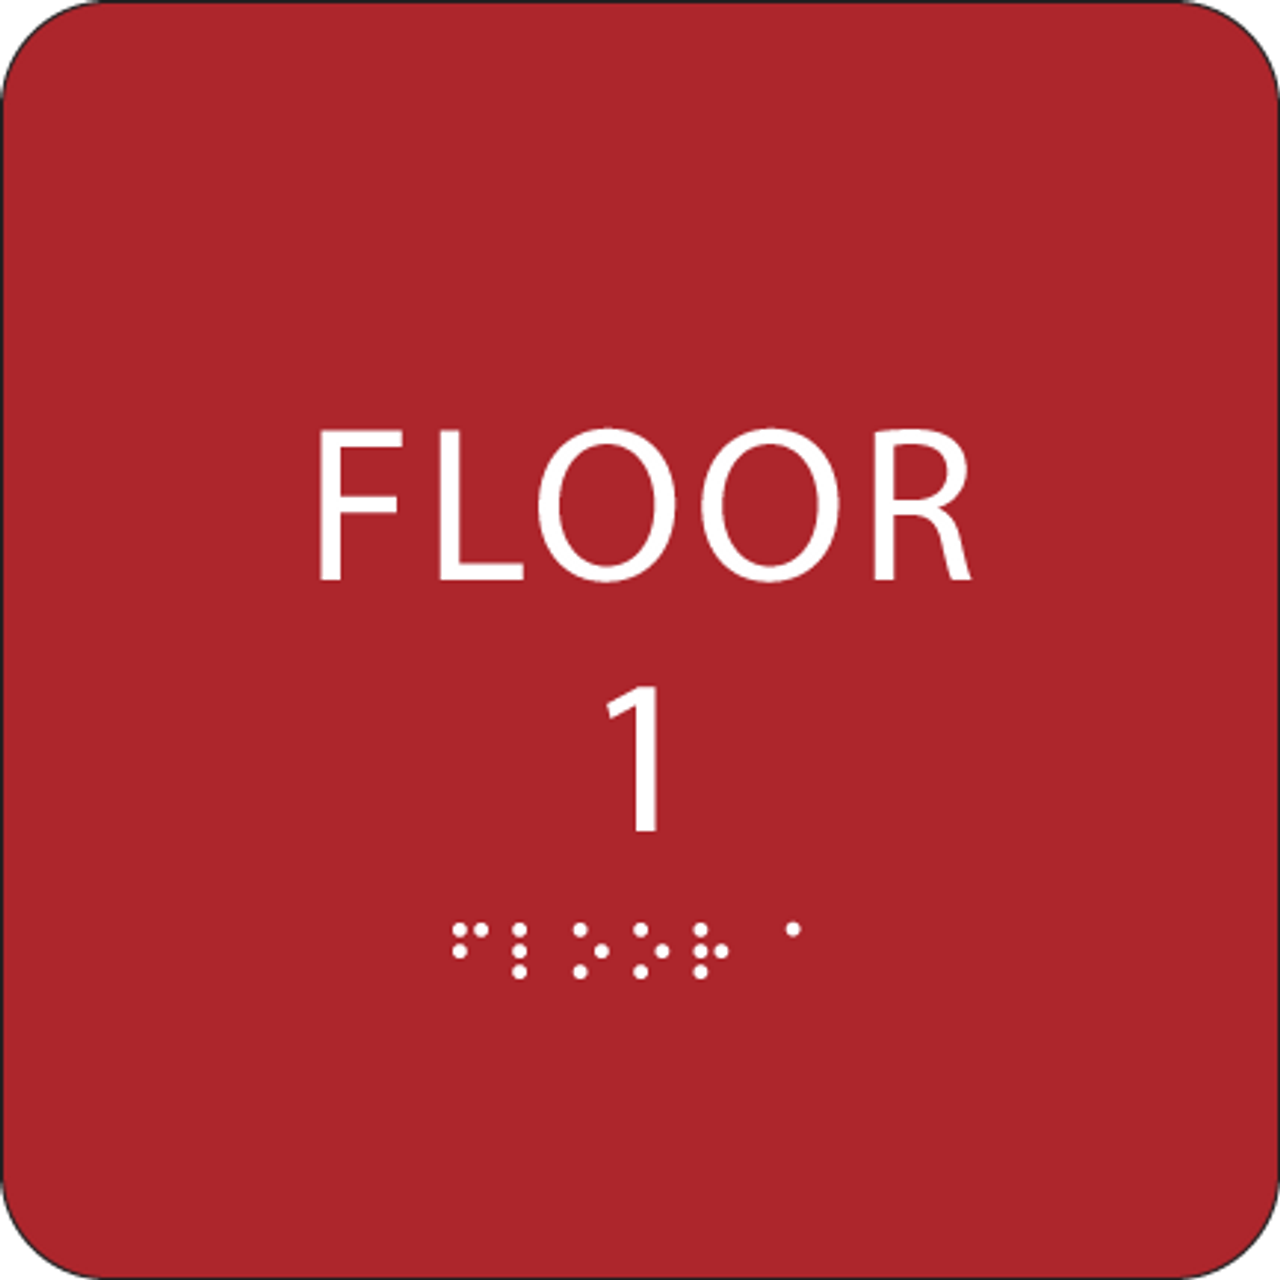 Red Floor 1 Identification Sign